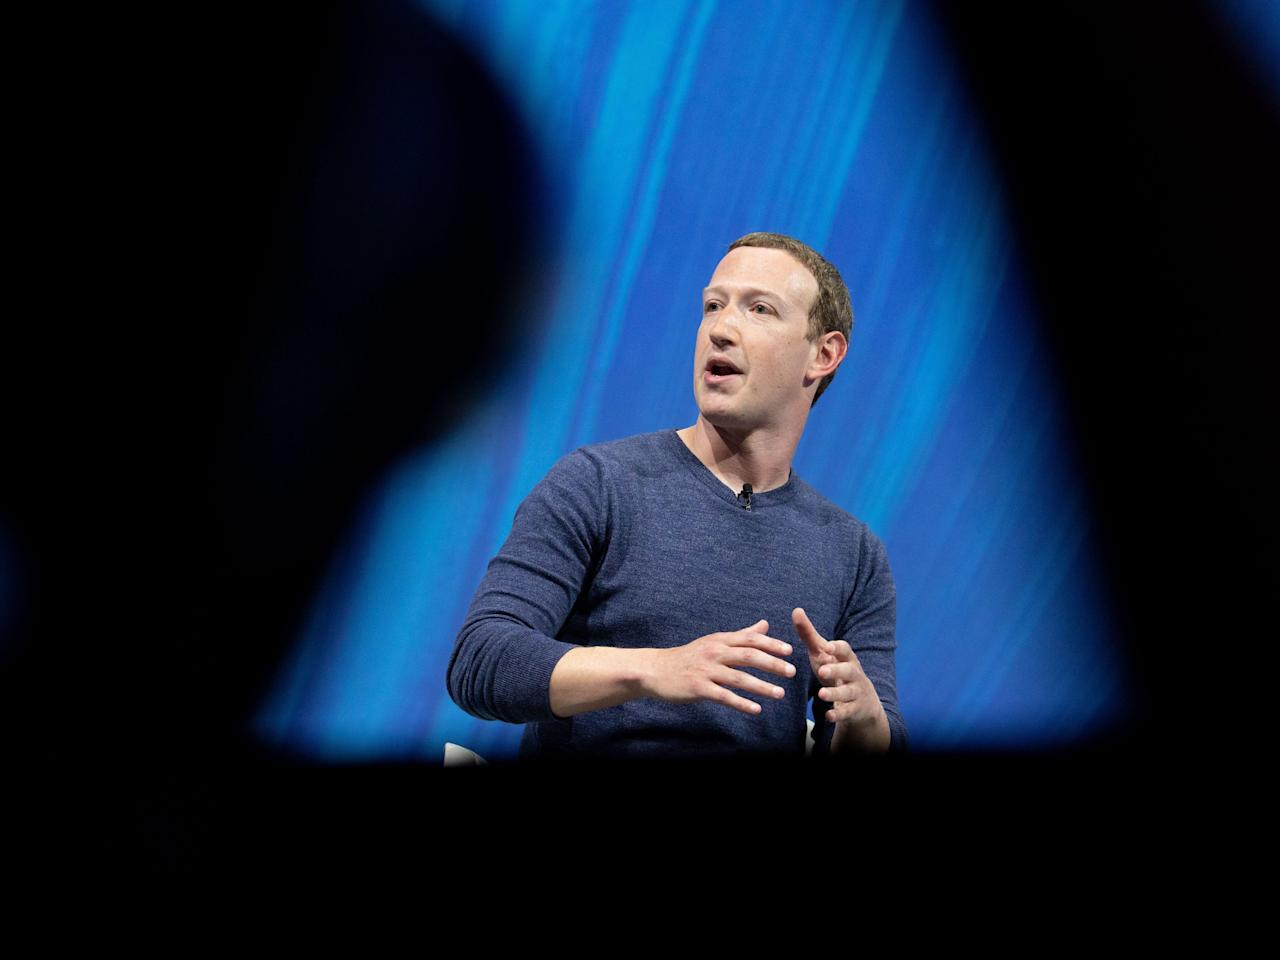 Mark Zuckerberg's $8 billion dip in net worth from the Facebook ad boycott shows corporate America is finally listening to calls for racial justice